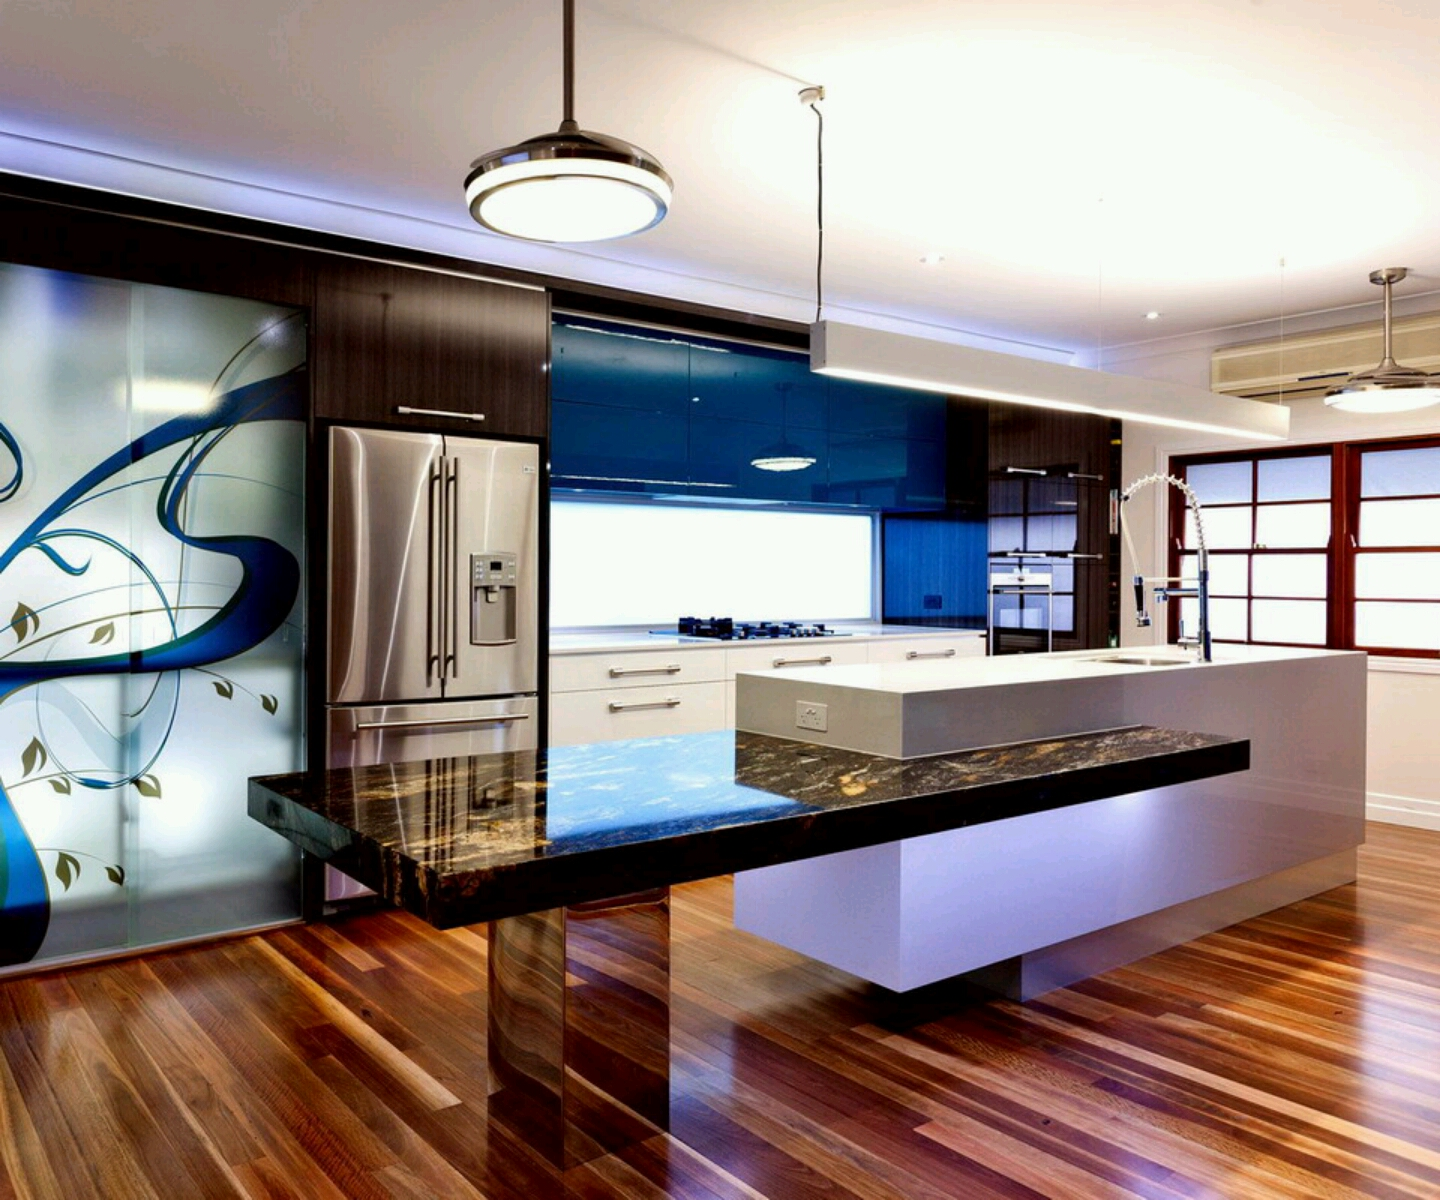 Ultra modern kitchen designs ideas new home designs for Home kitchen design images